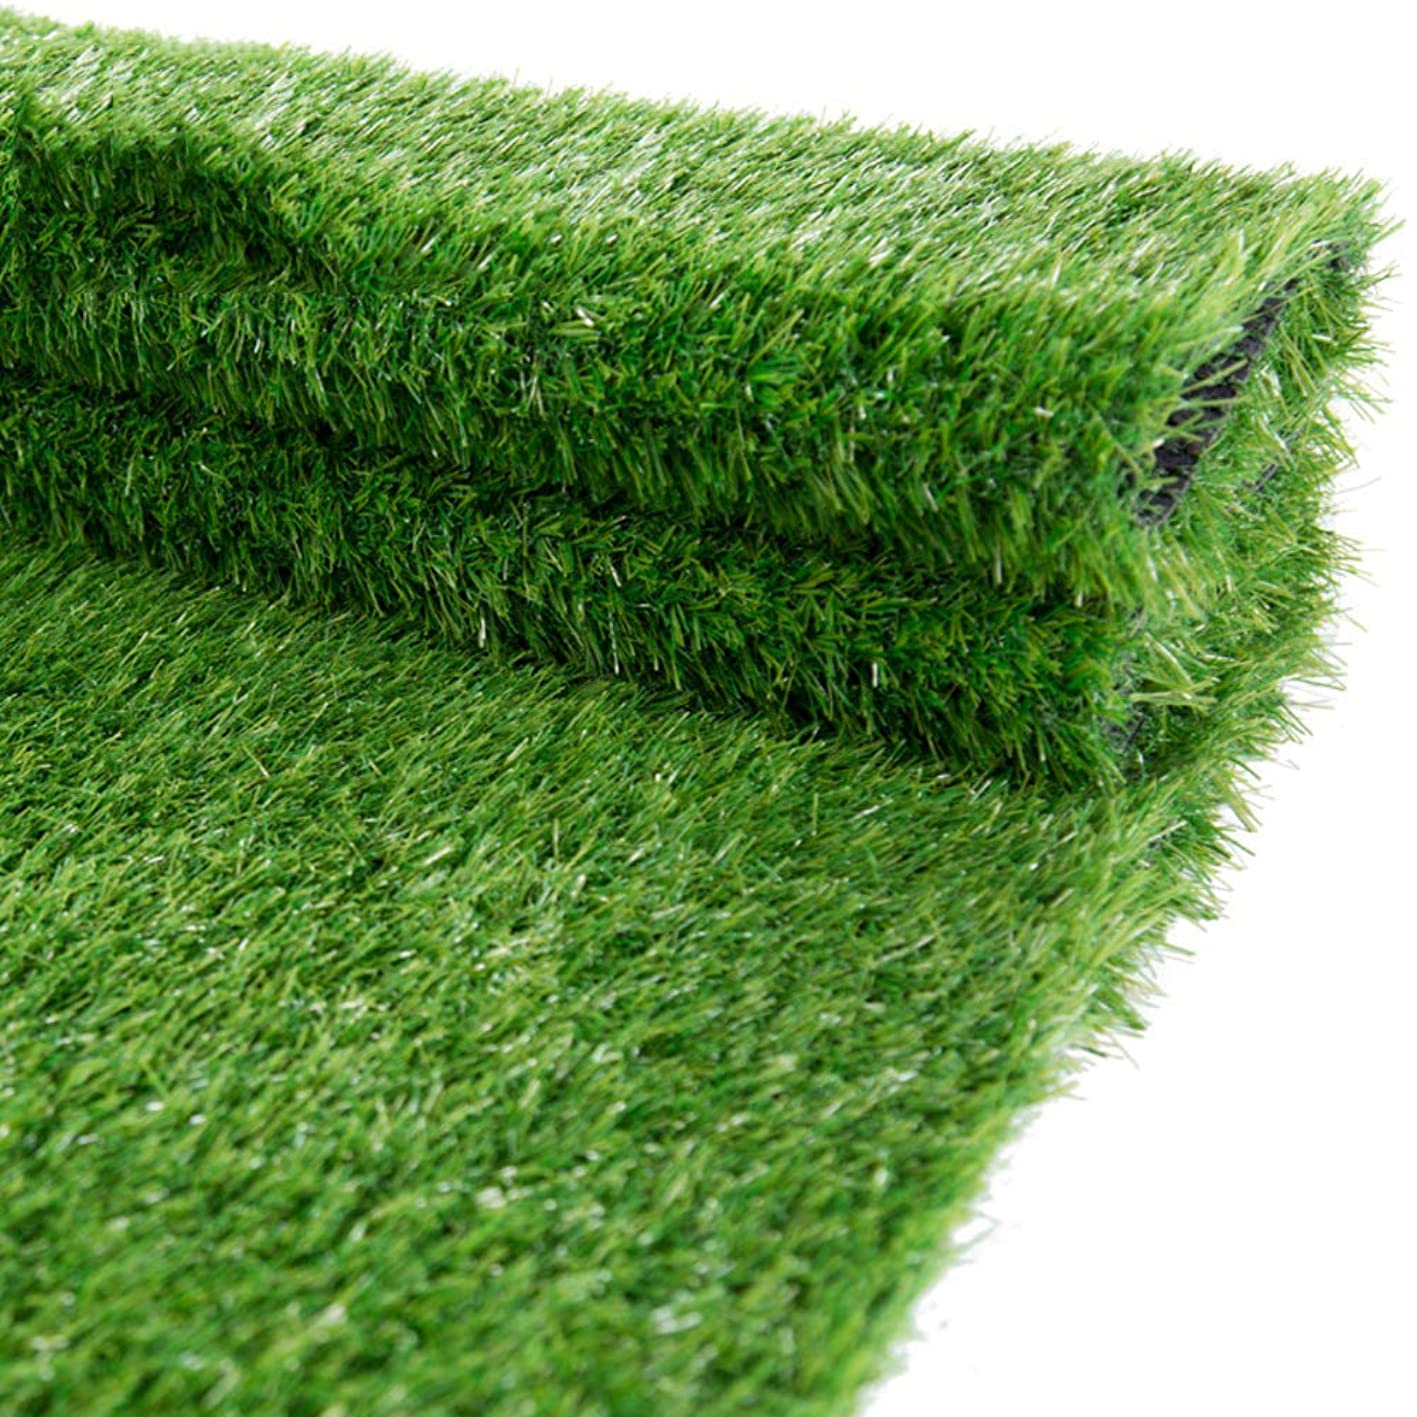 YEYE High Density Artificial Grass,Synthetic 40mm Pet Turf with Drainage Holes Rubber Backing Grass Rug for Patio Balcony Fake Grass-Green 200x350cm(79x138inch) eajcudllwlf758